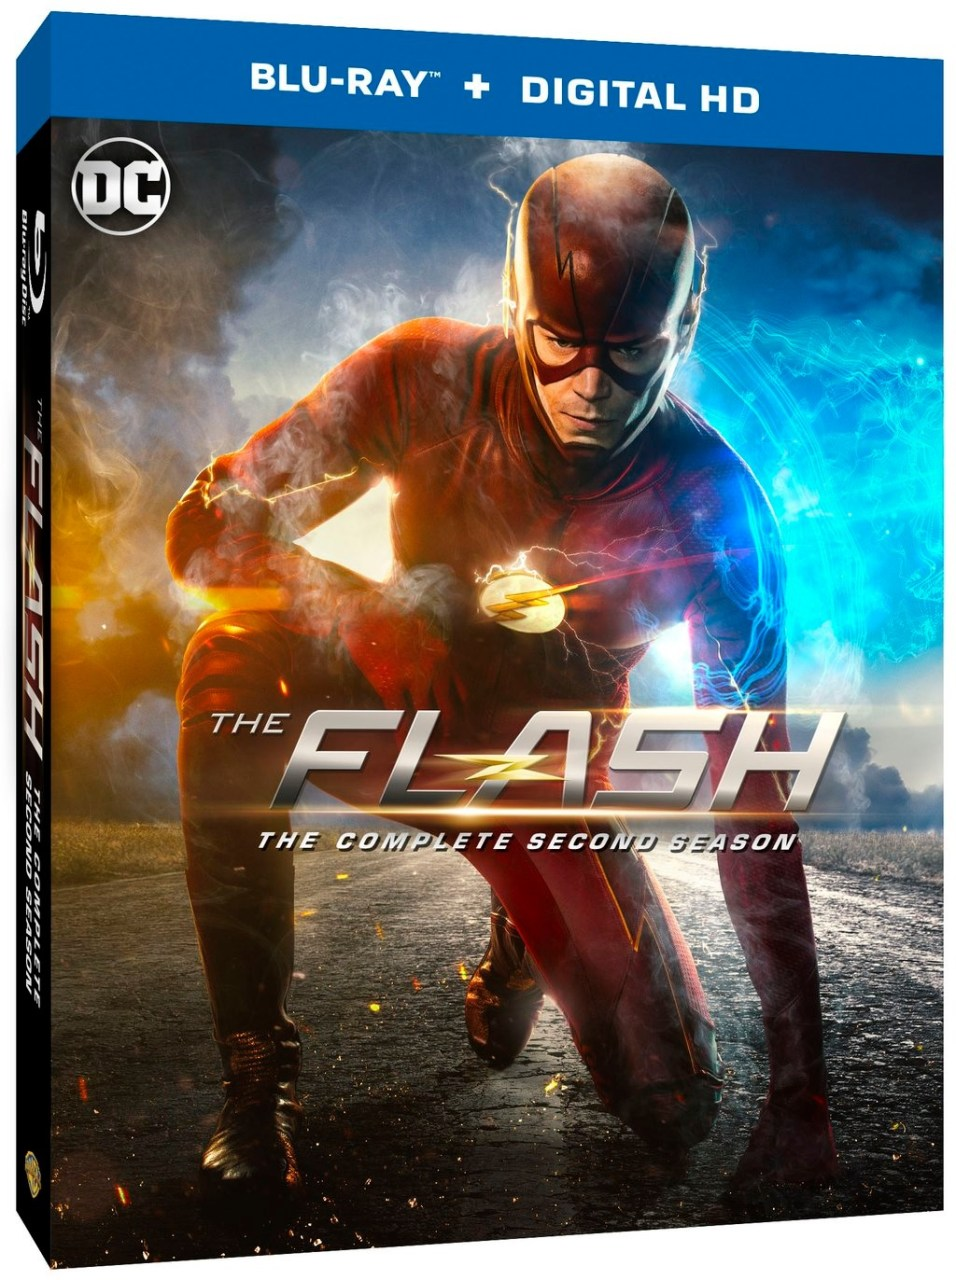 The Flash Season 2 Blu-Ray Edition